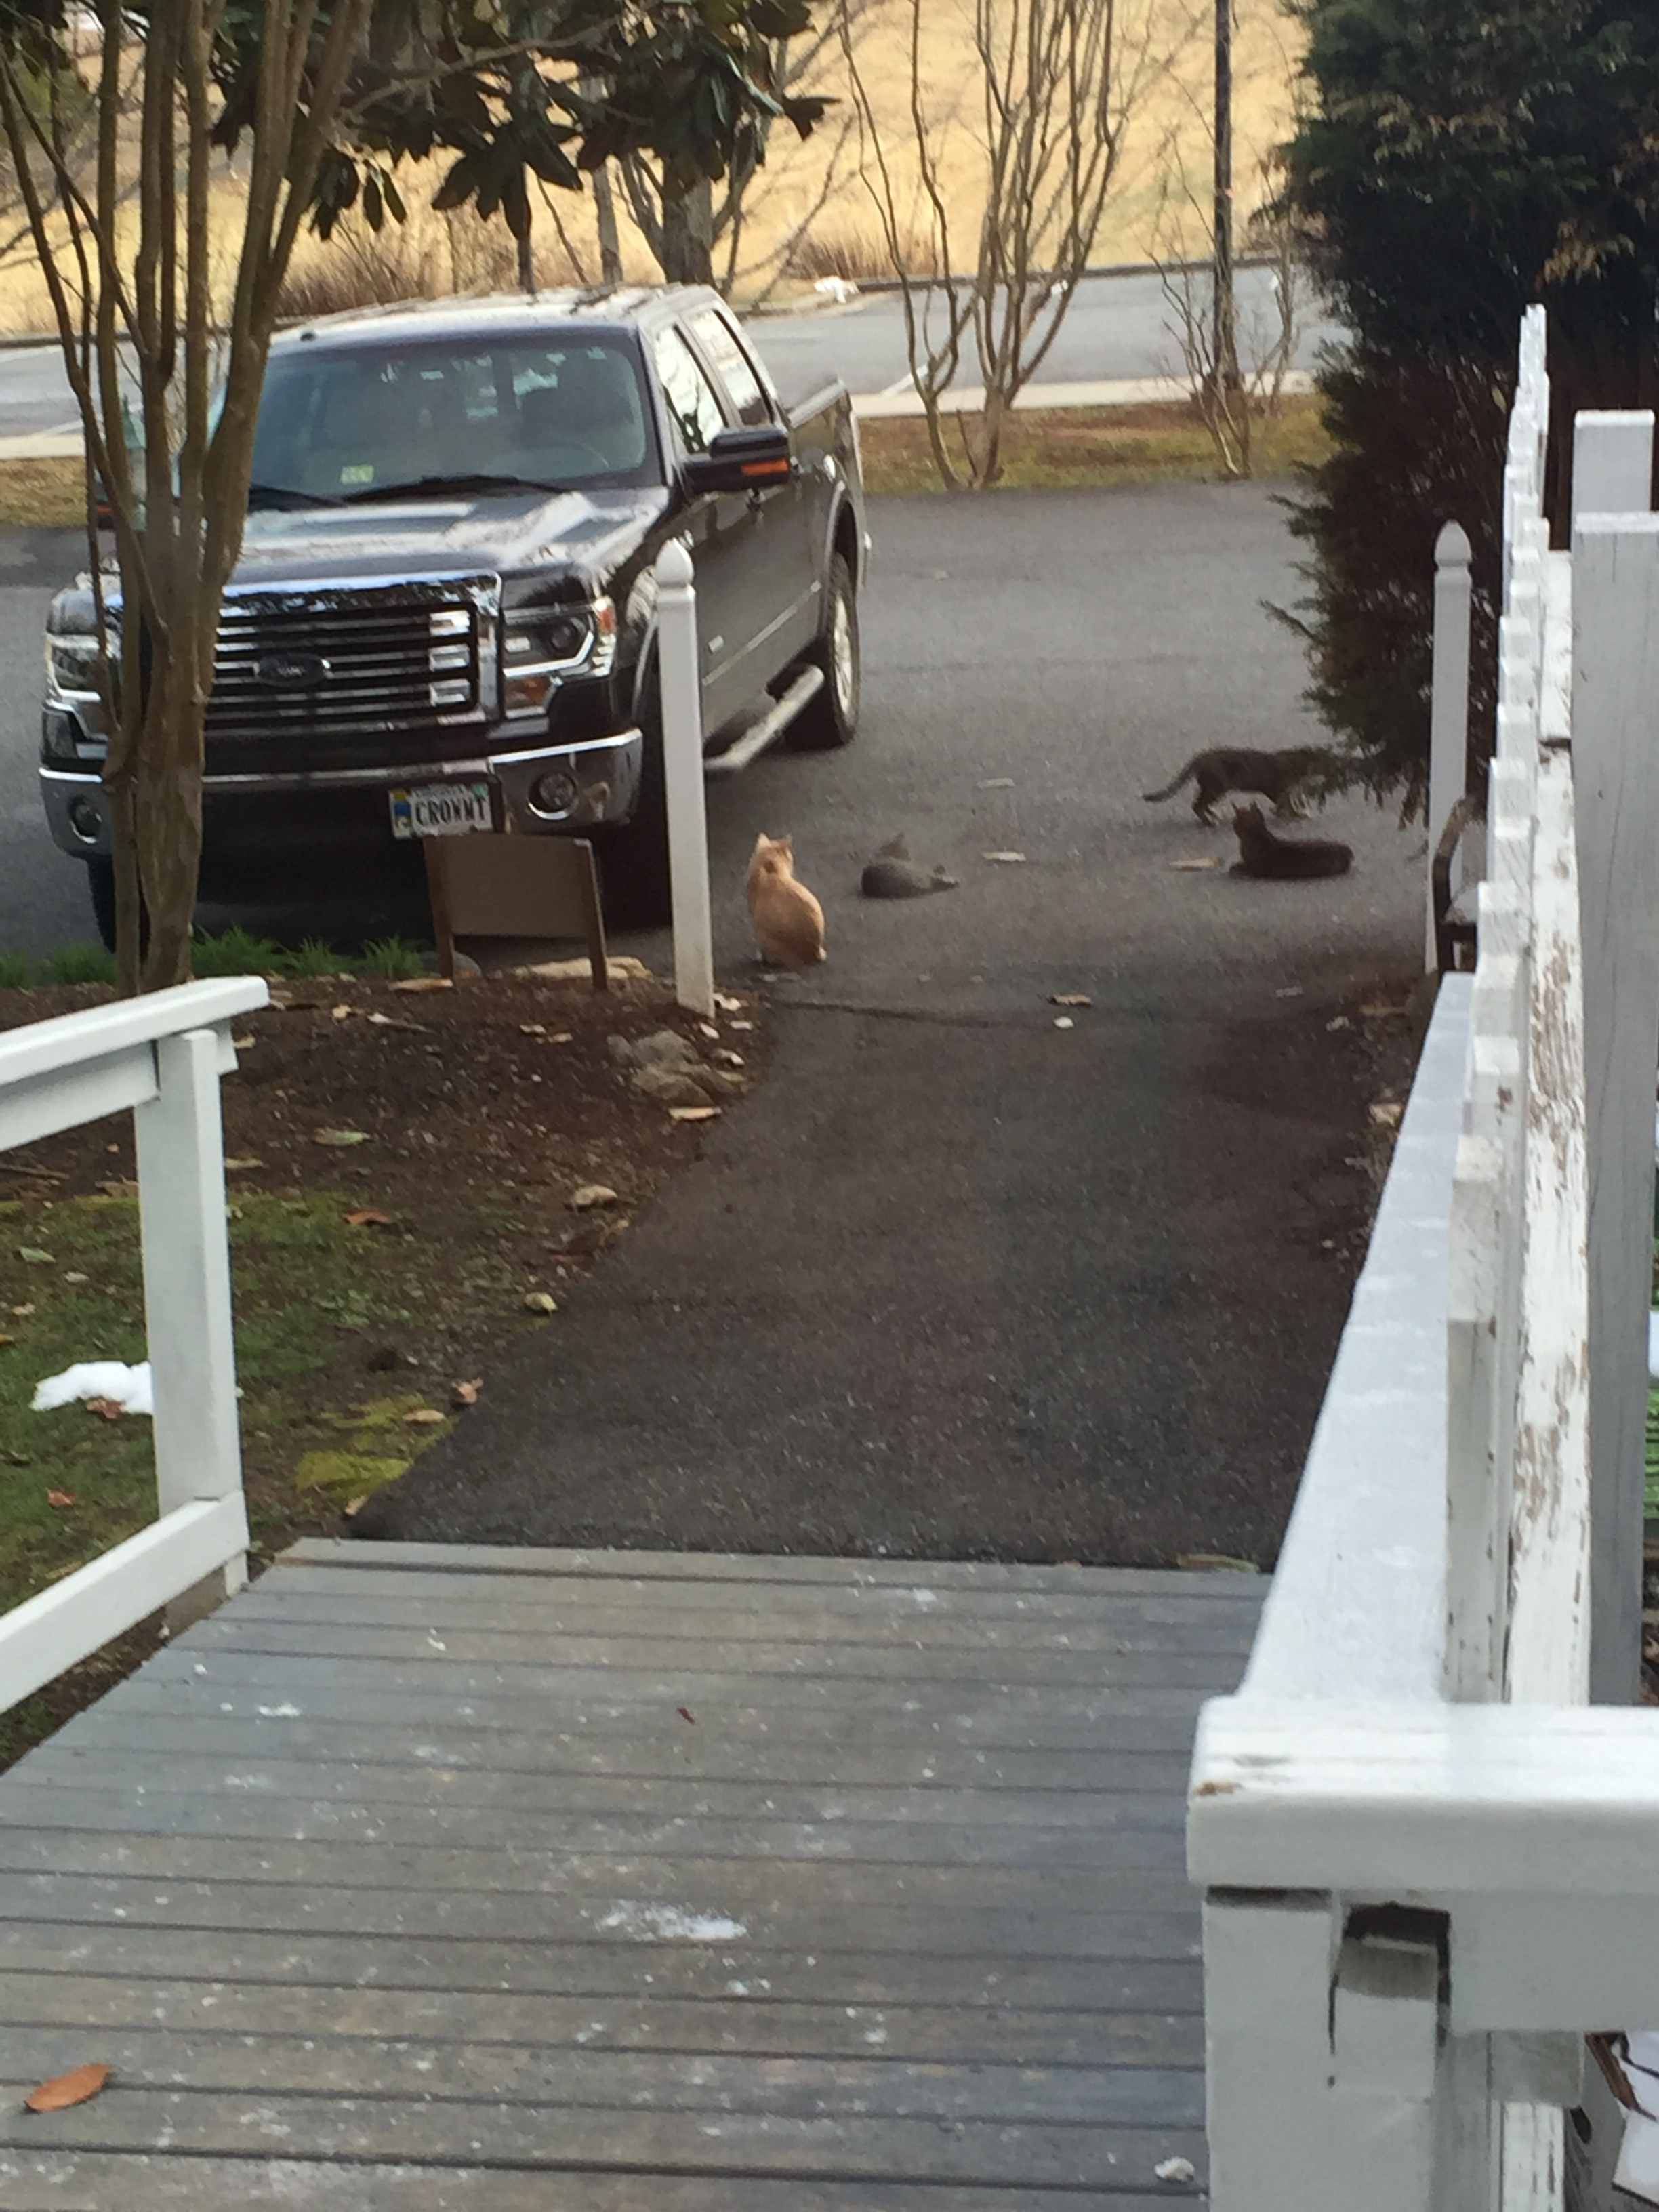 Cats near arriving pickup truck